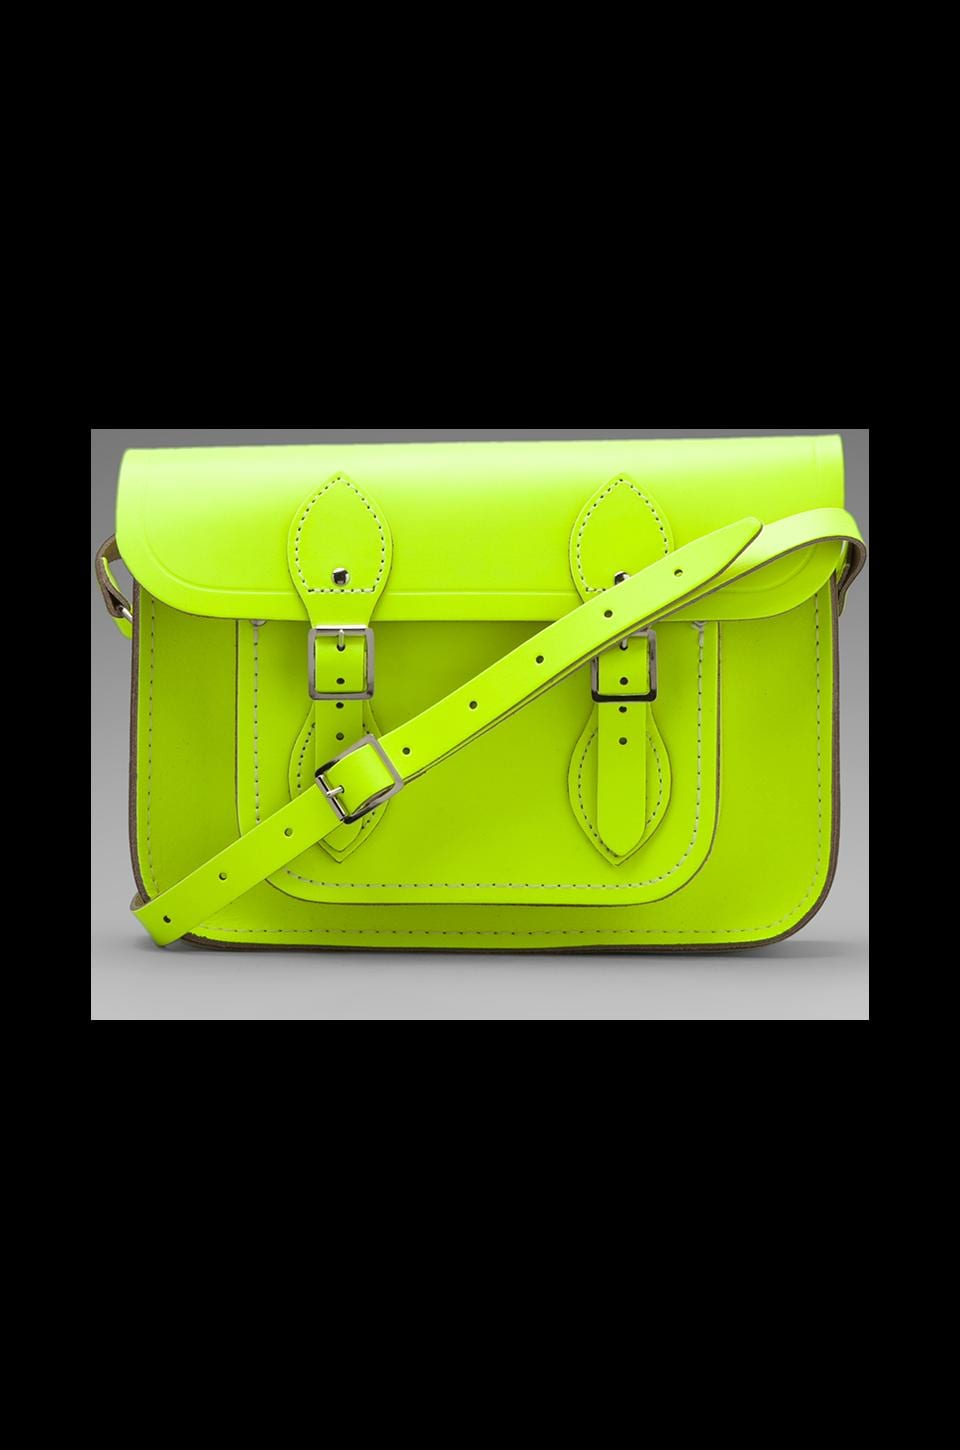 The Cambridge Satchel Company Single Strap Satchel in Fluoro Yellow